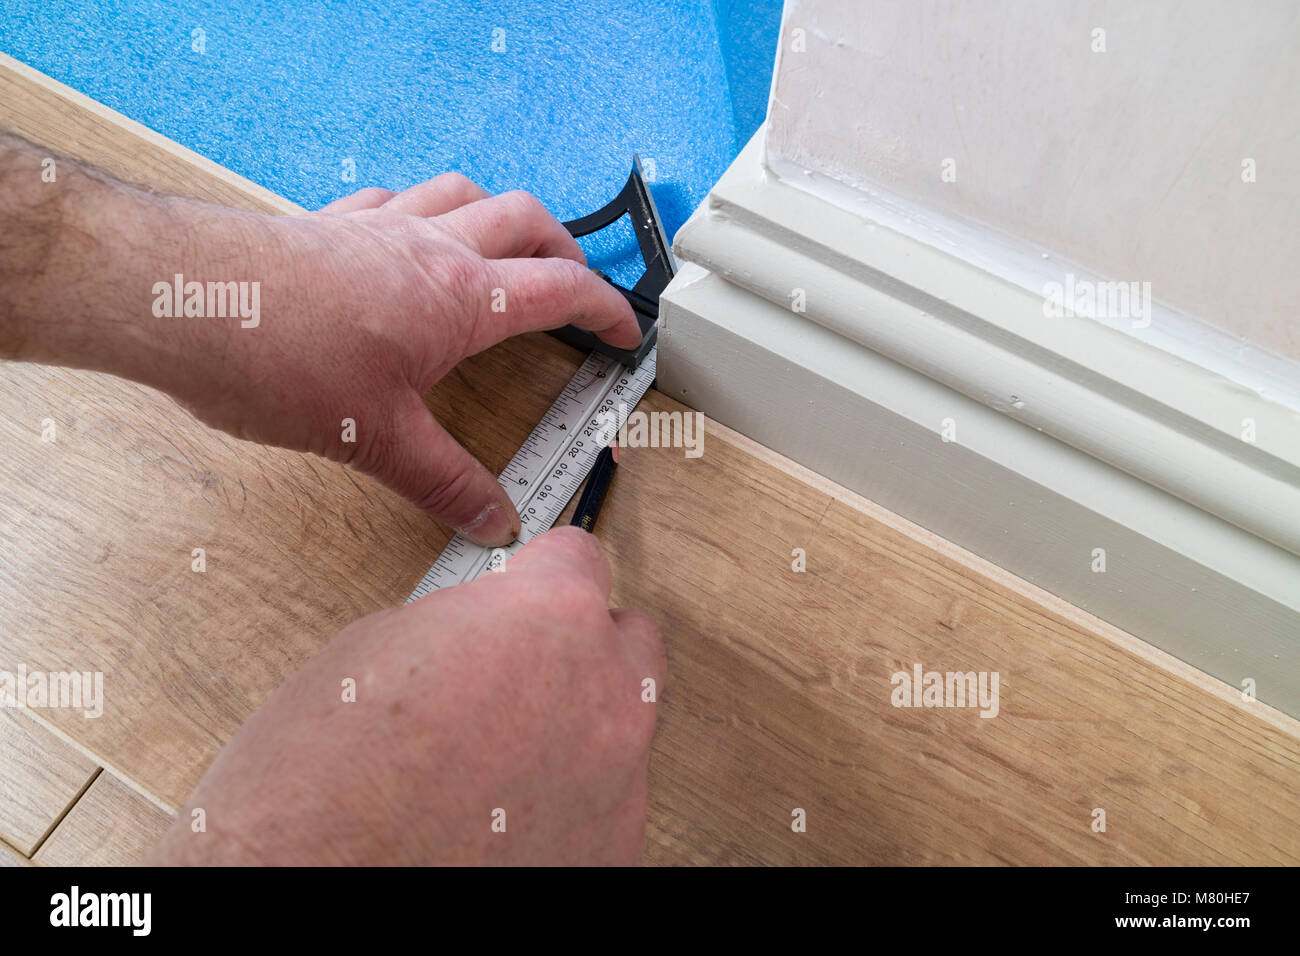 A Person Marking Out a Laminated Floor Board Using a Combination Set Square to Mark Out a Corner, UK. - Stock Image